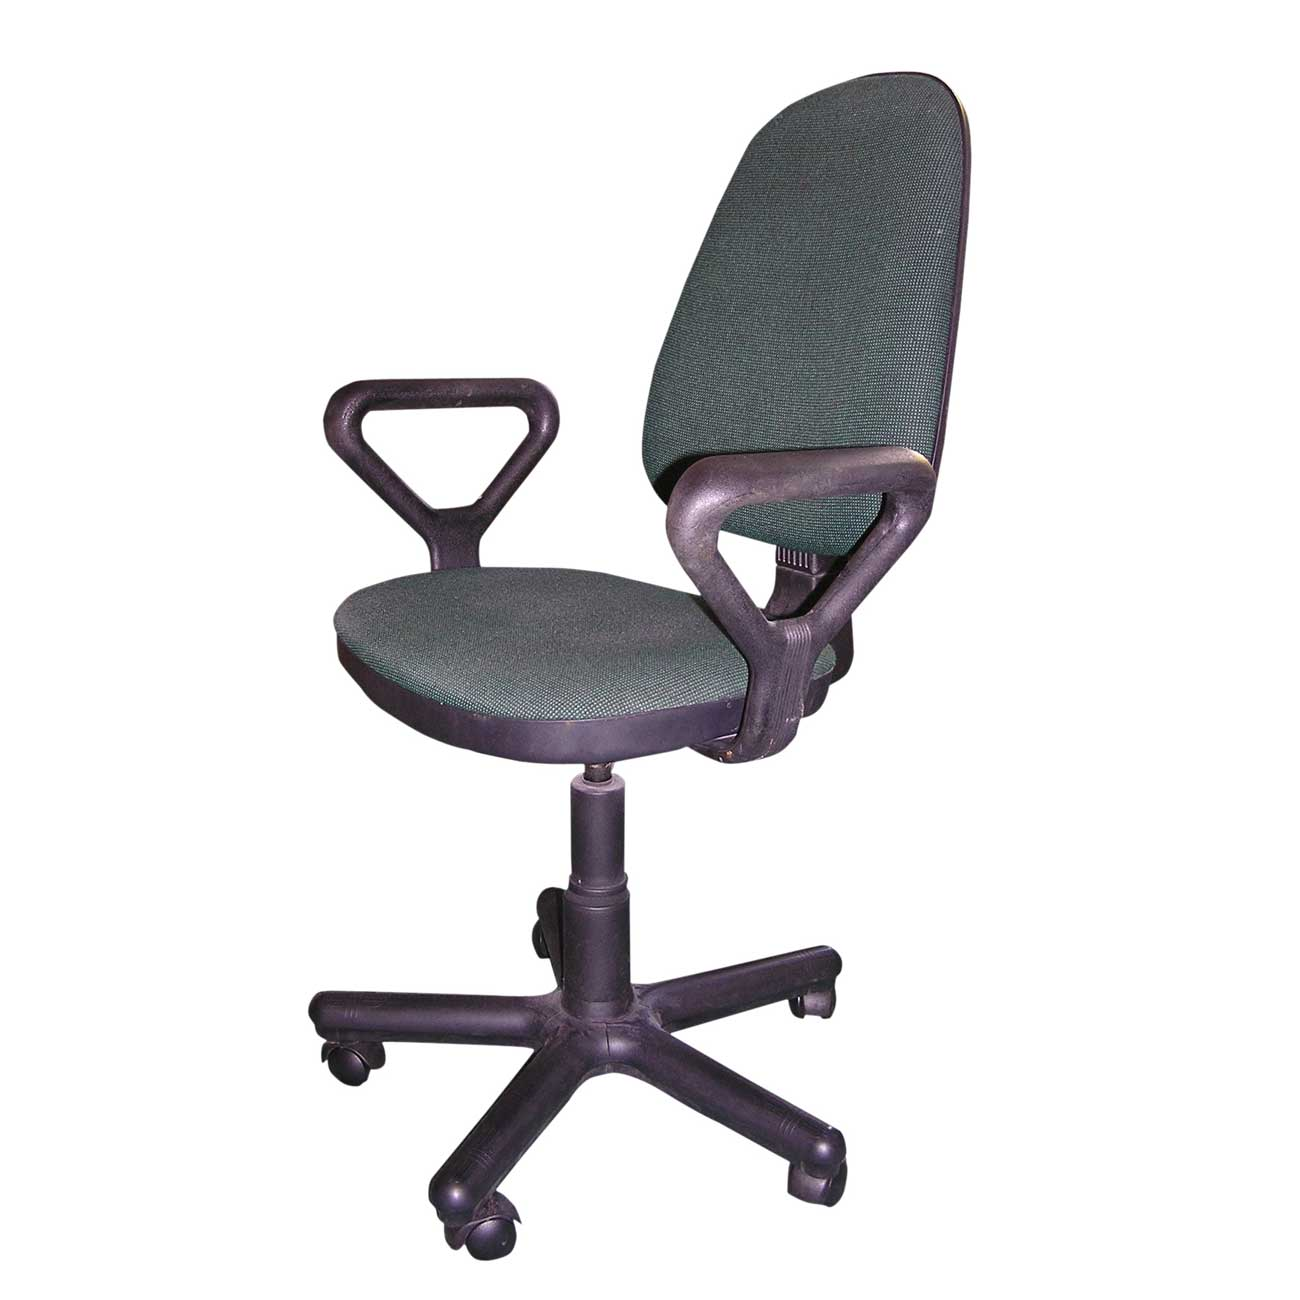 Used small seat office chair with arms